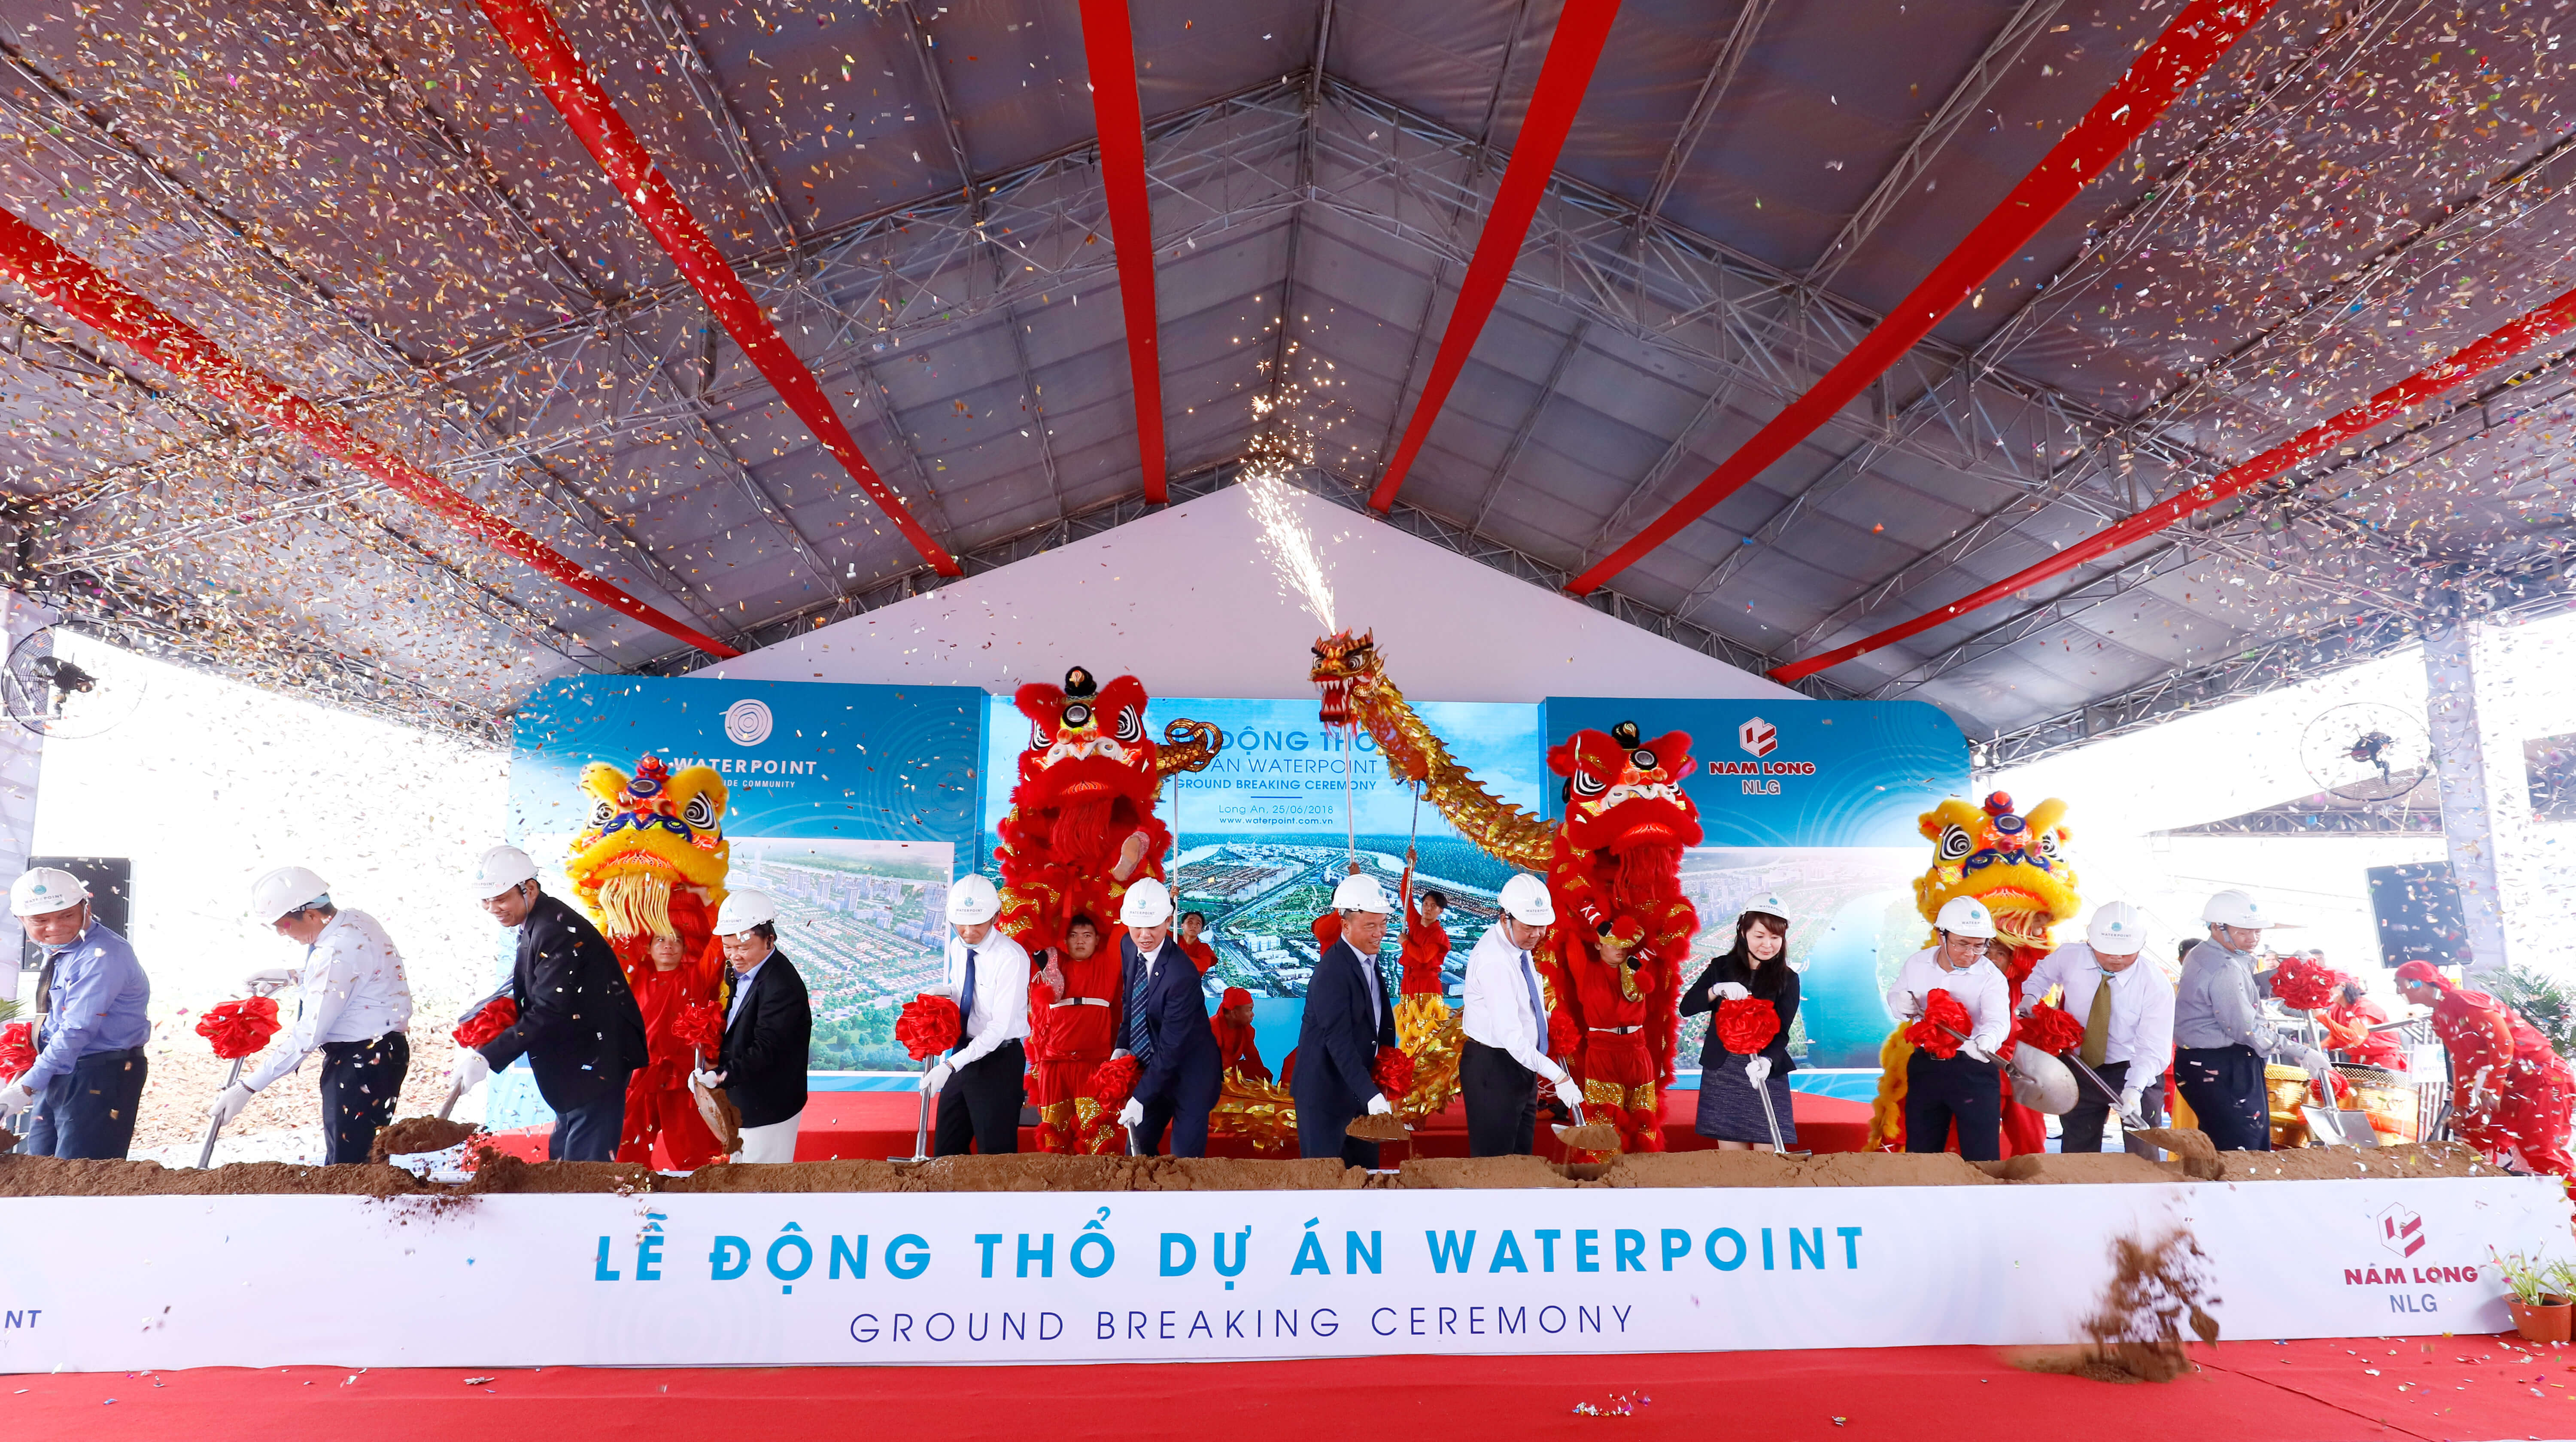 Le dong tho du an Waterpoint